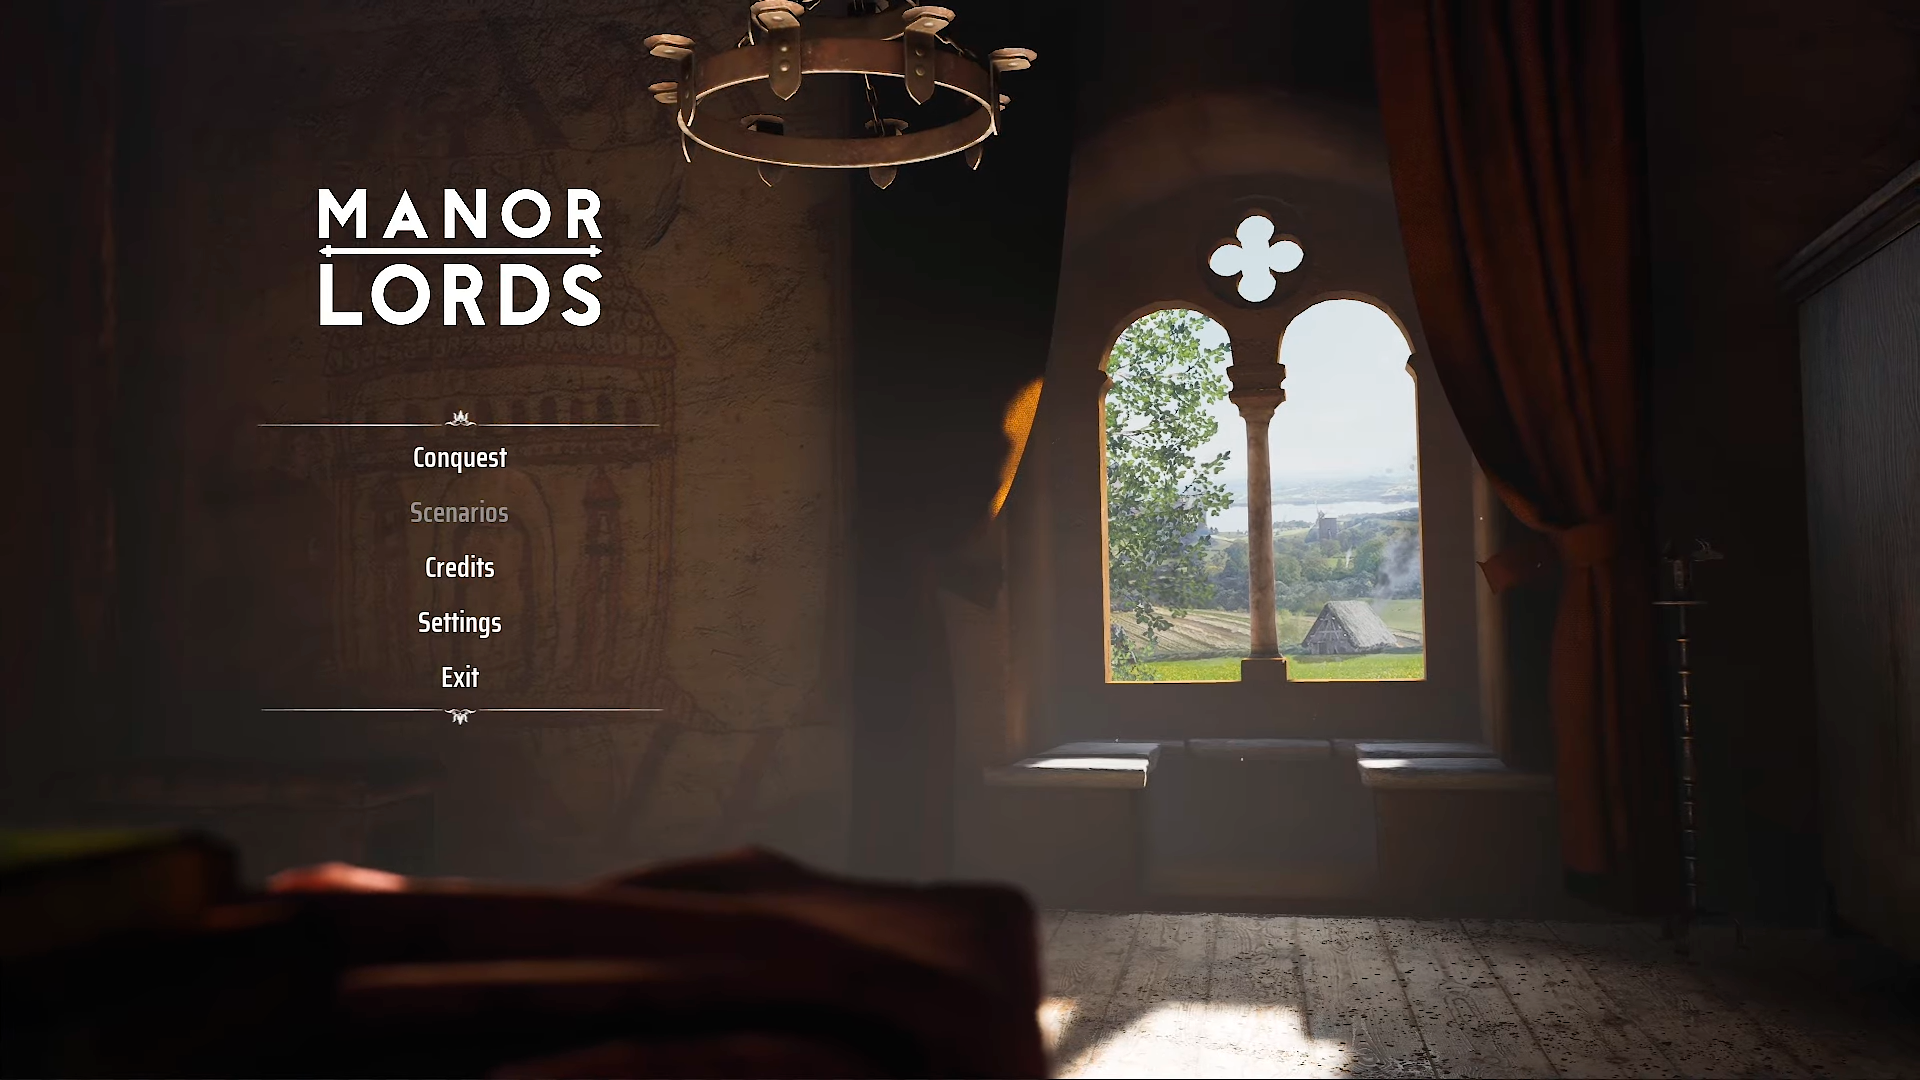 manor-lords-menu.png